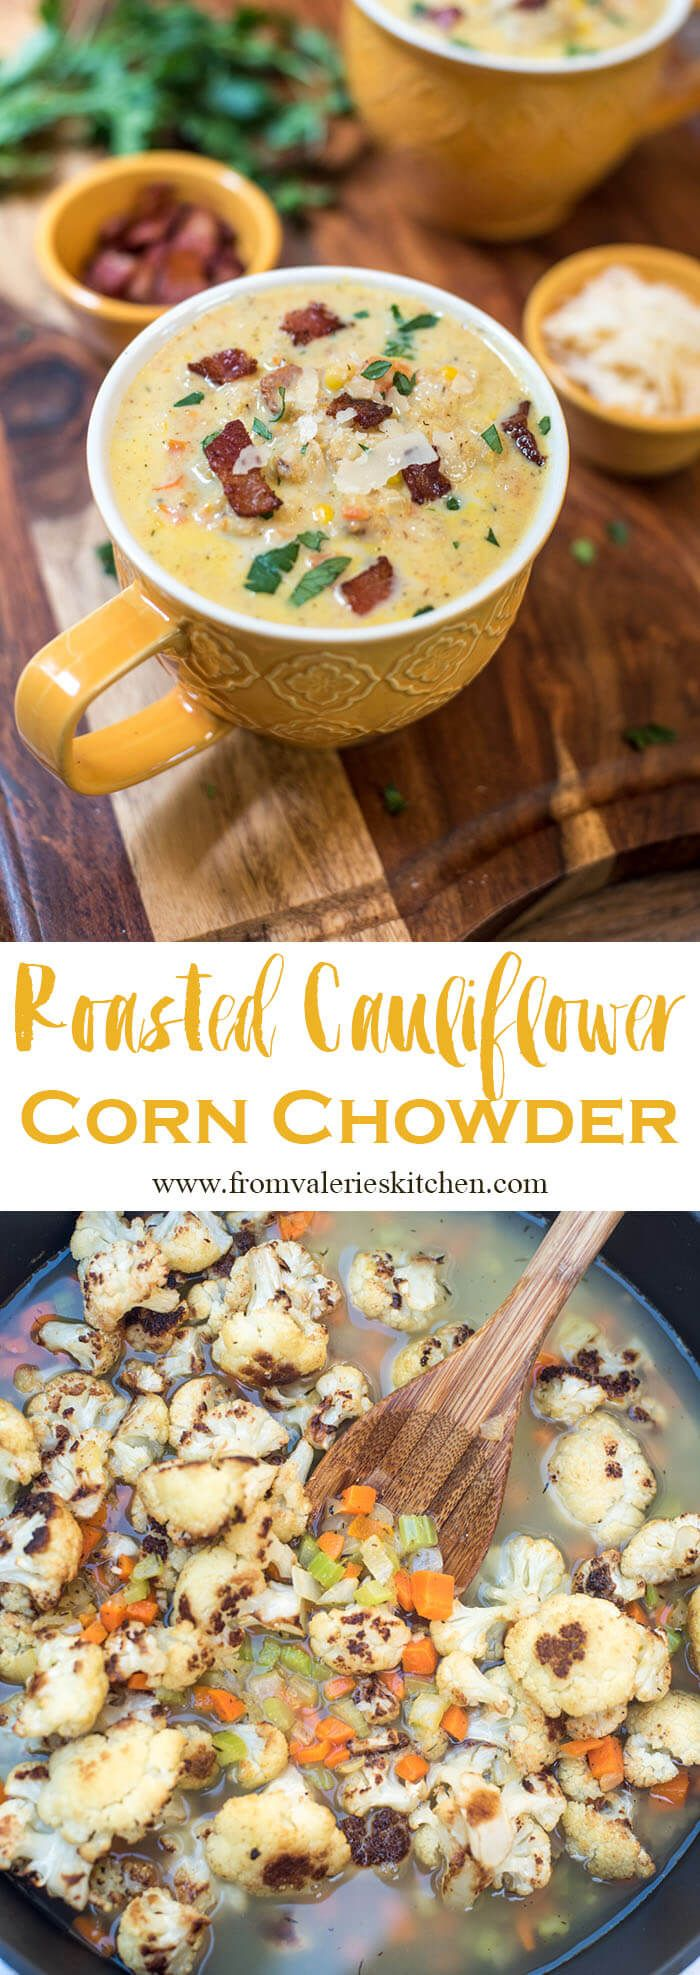 Roasted cauliflower, garlic, bacon and Parmesan combine deliciously with sweet corn in this Roasted Cauliflower Corn Chowder. ~ http://www.fromvalerieskitchen.com